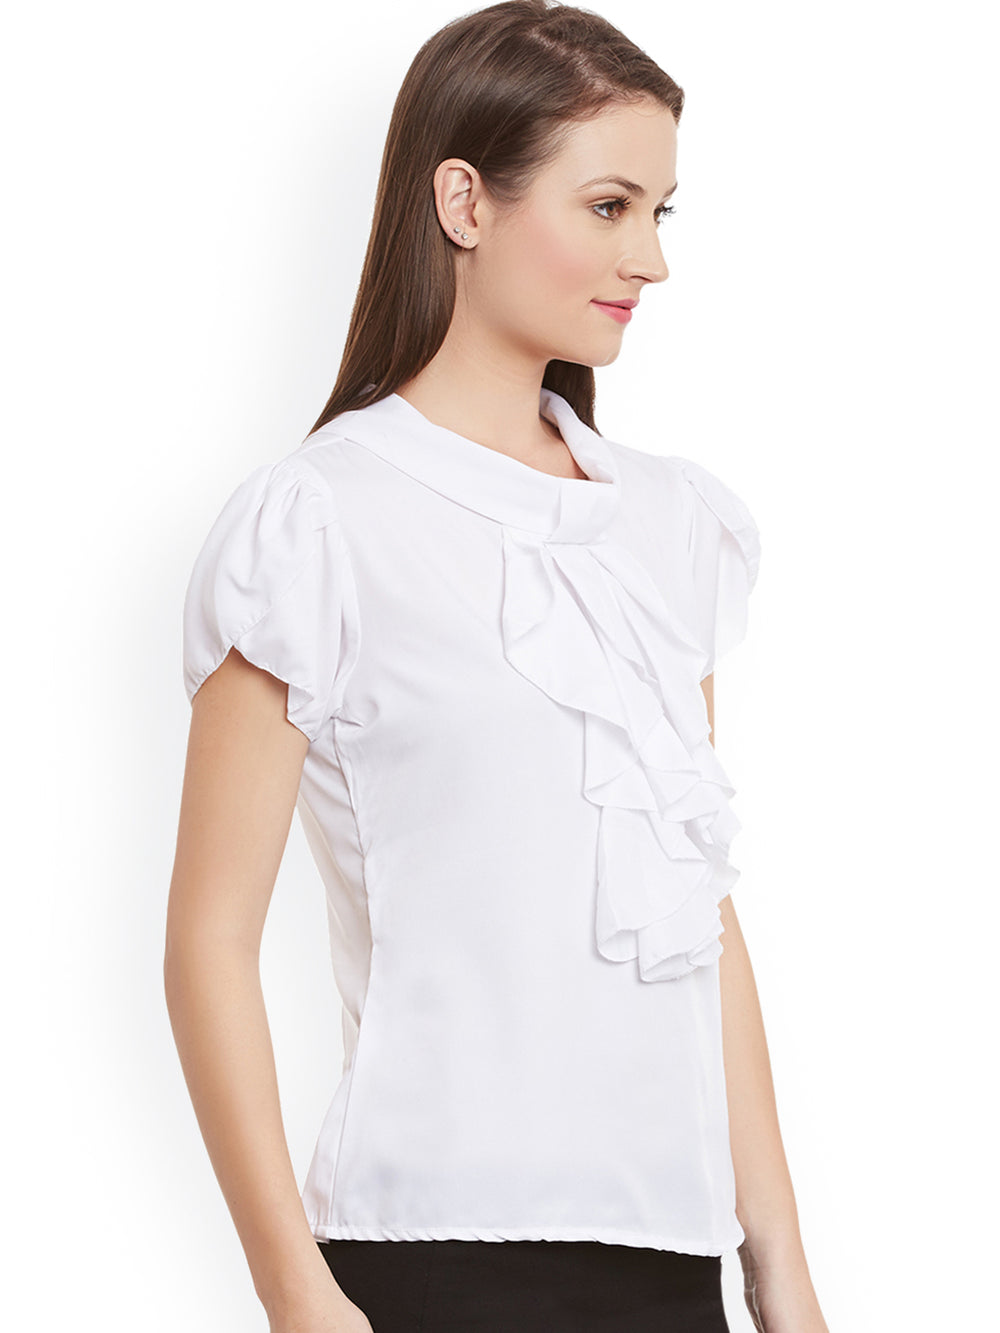 eyelet Women White Top